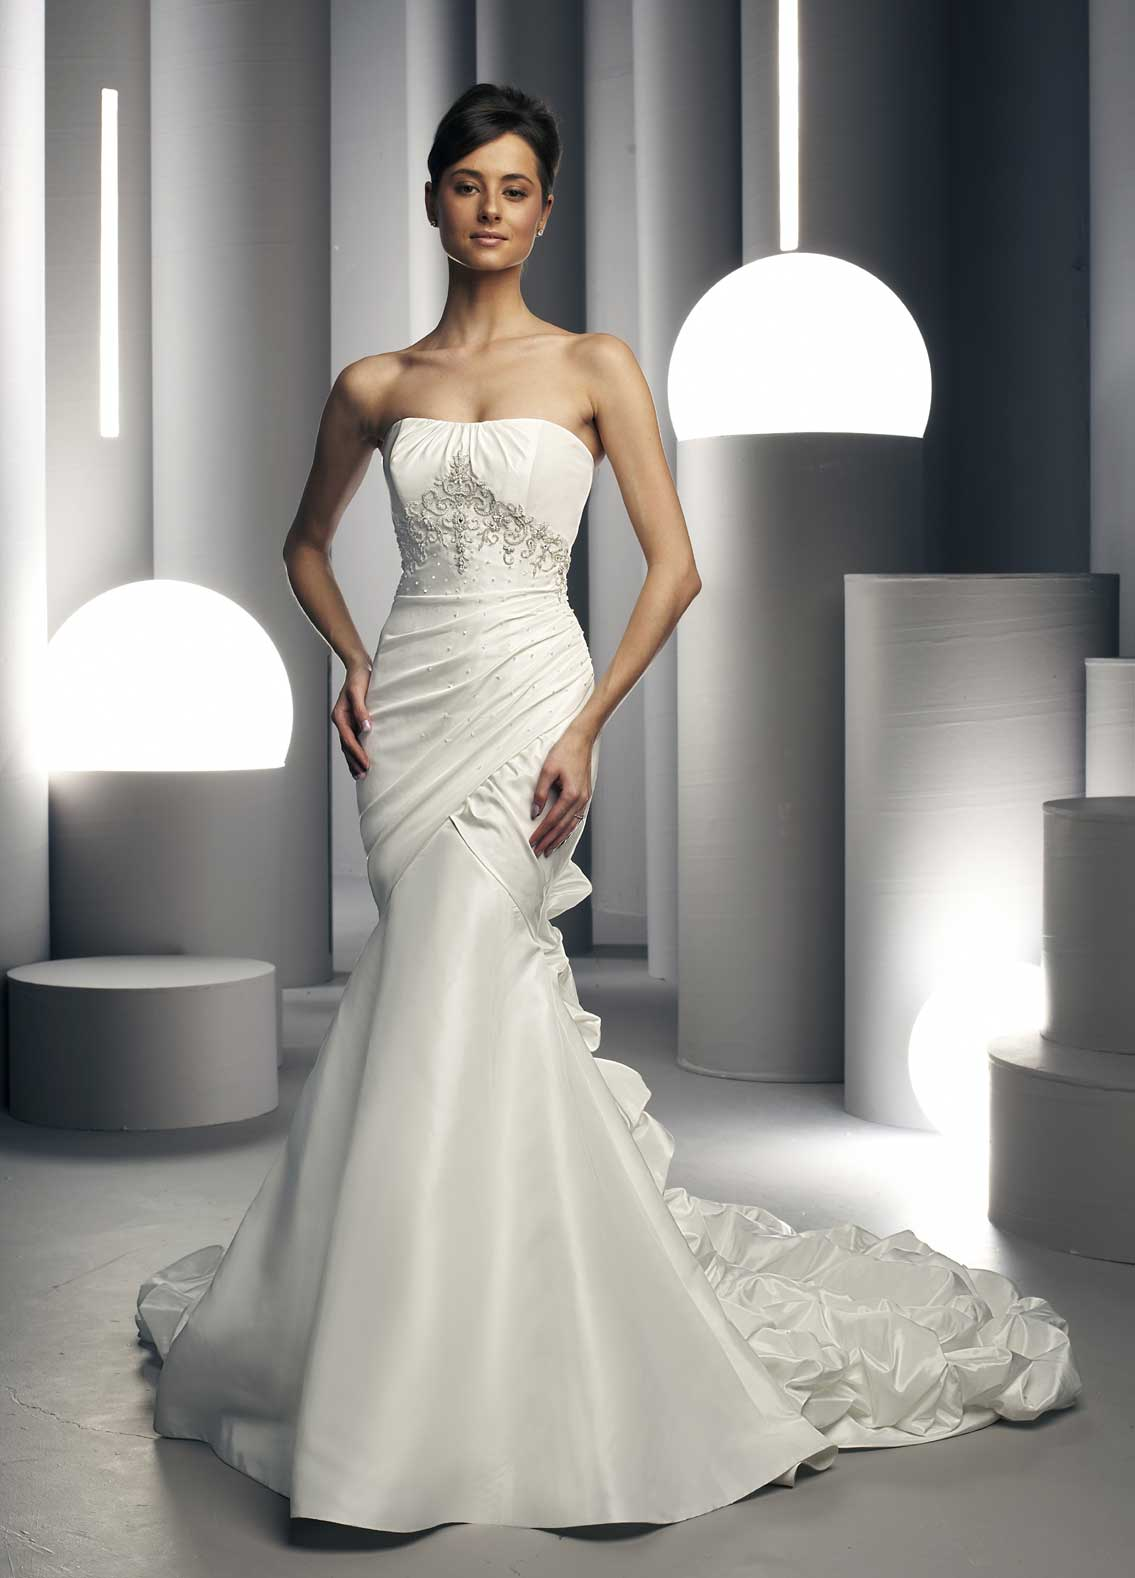 Elegance Of   Wedding Dresses : White bridal s dresses designs quot fancy and elegant